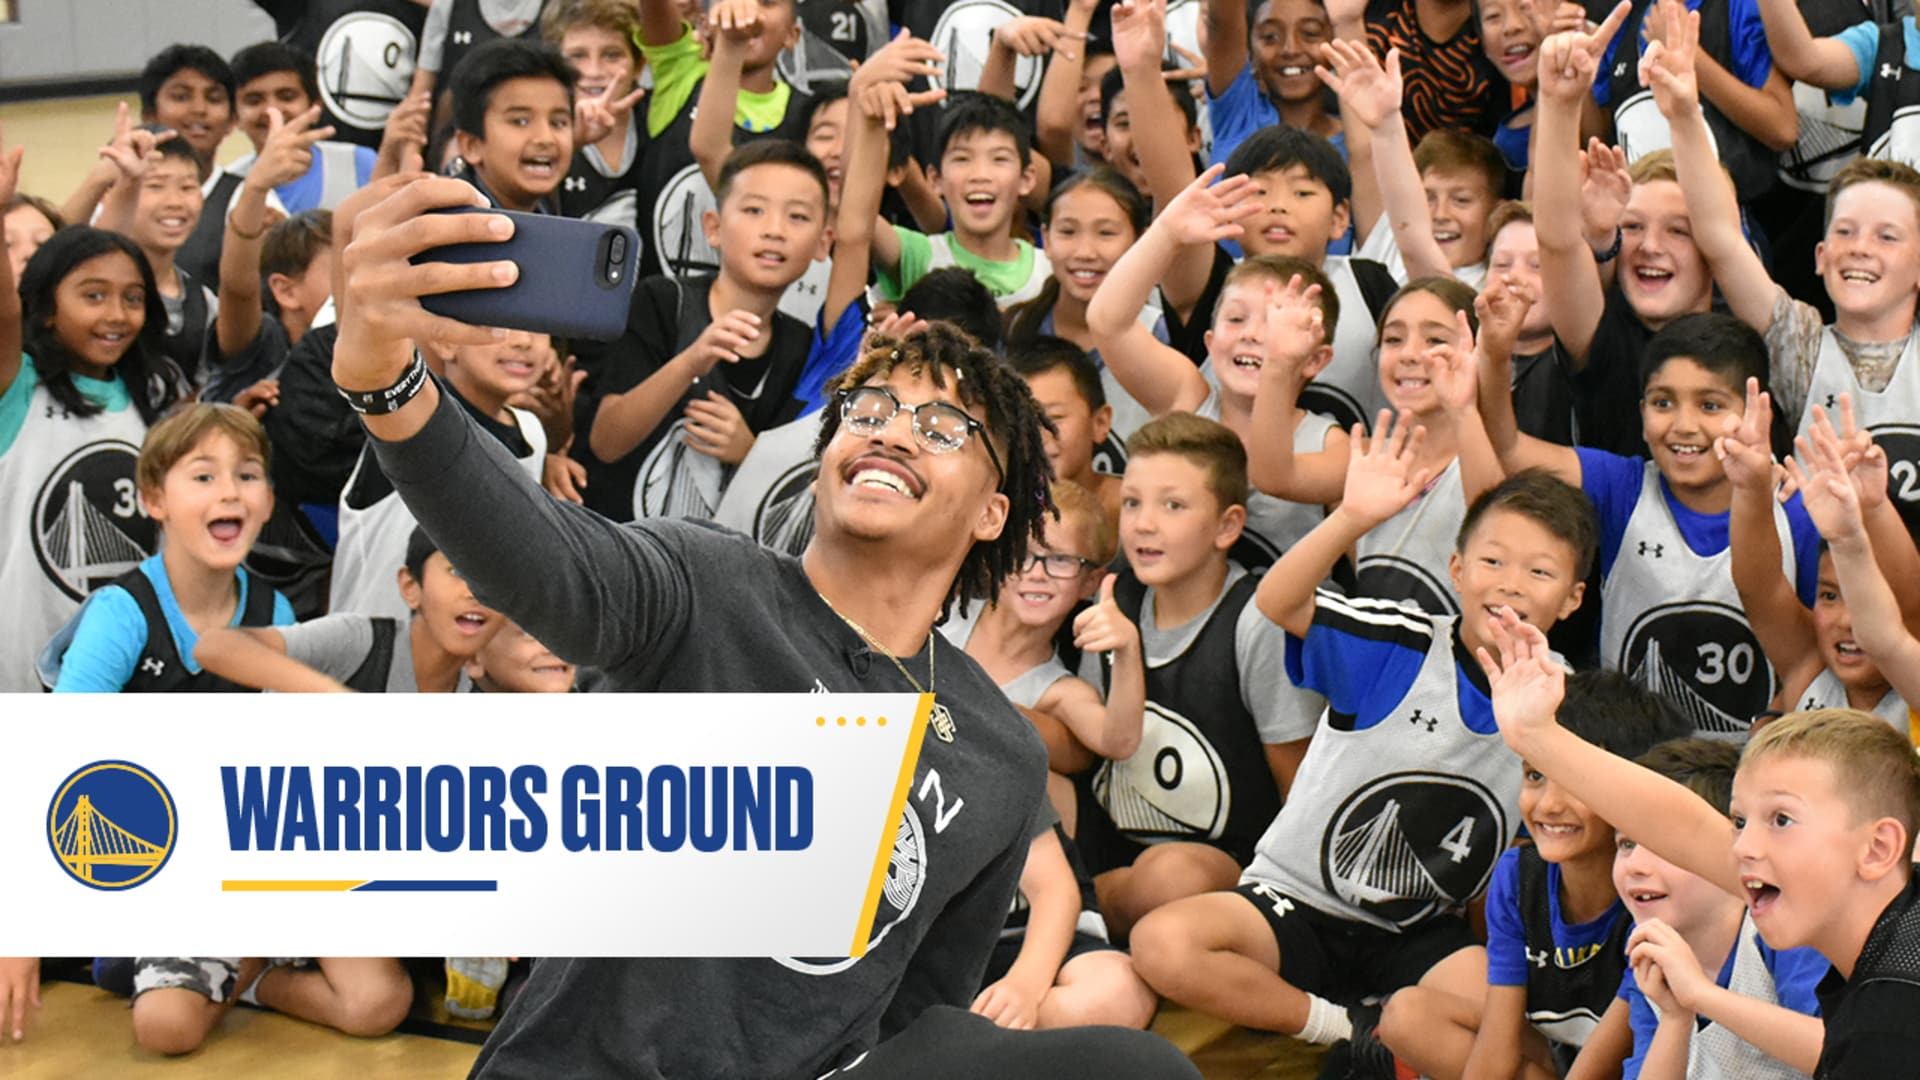 Warriors Ground: Warriors Basketball Academy